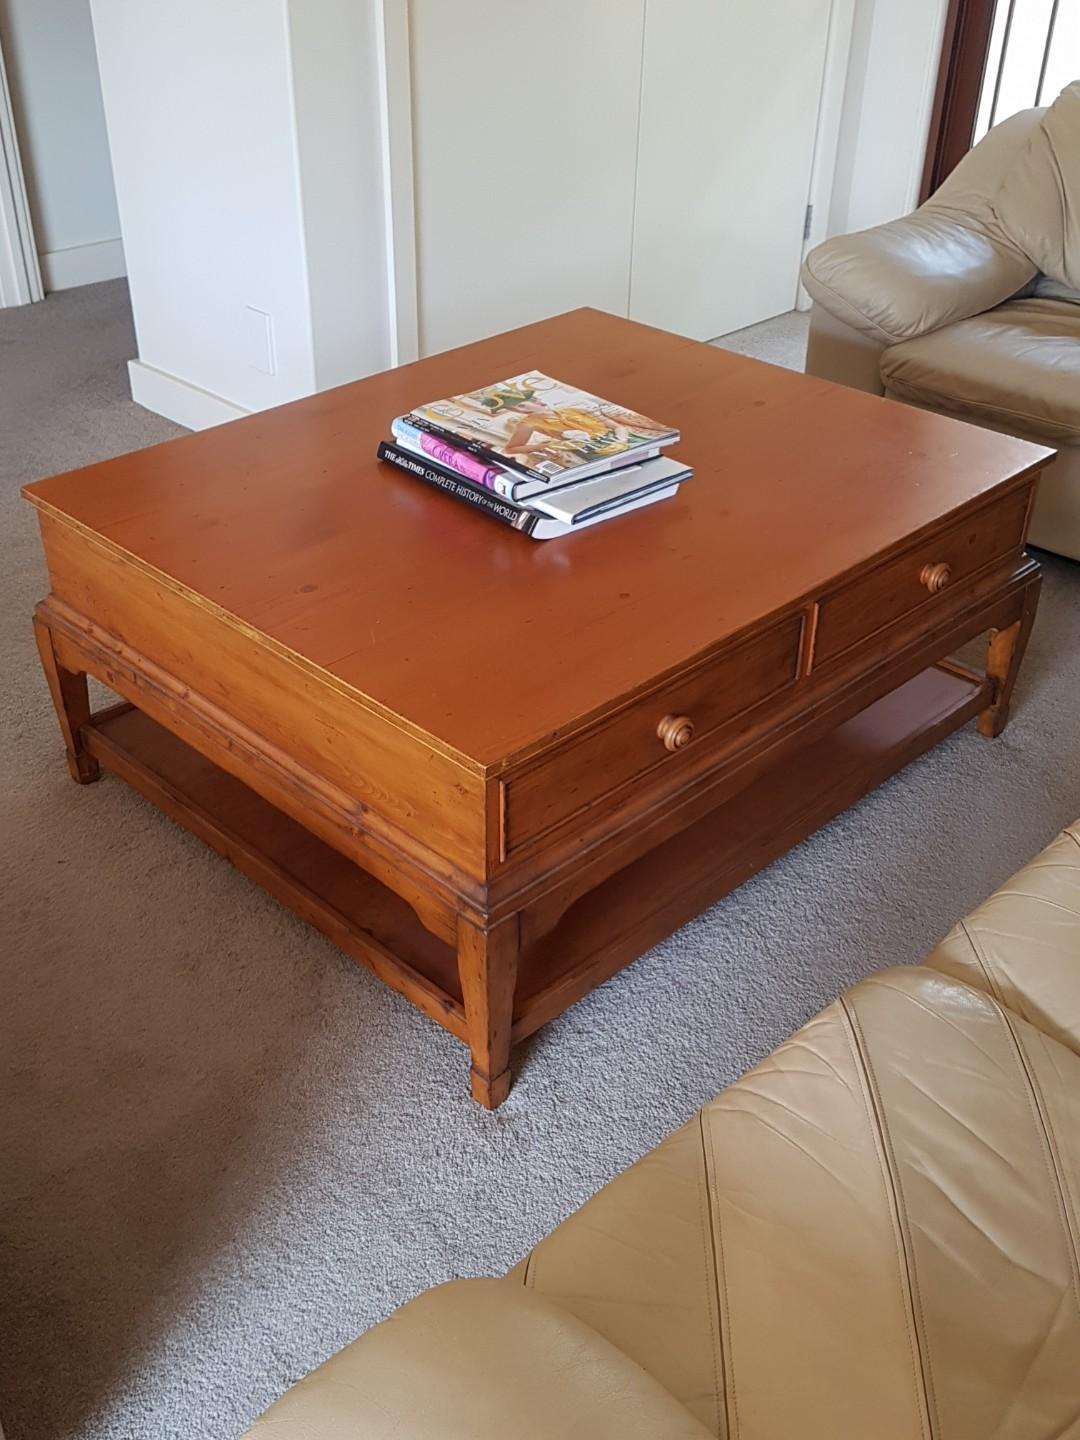 RALPH LAUREN CLASSIC DESIGN COCKTAIL TABLE - KING SIZE - REDUCED